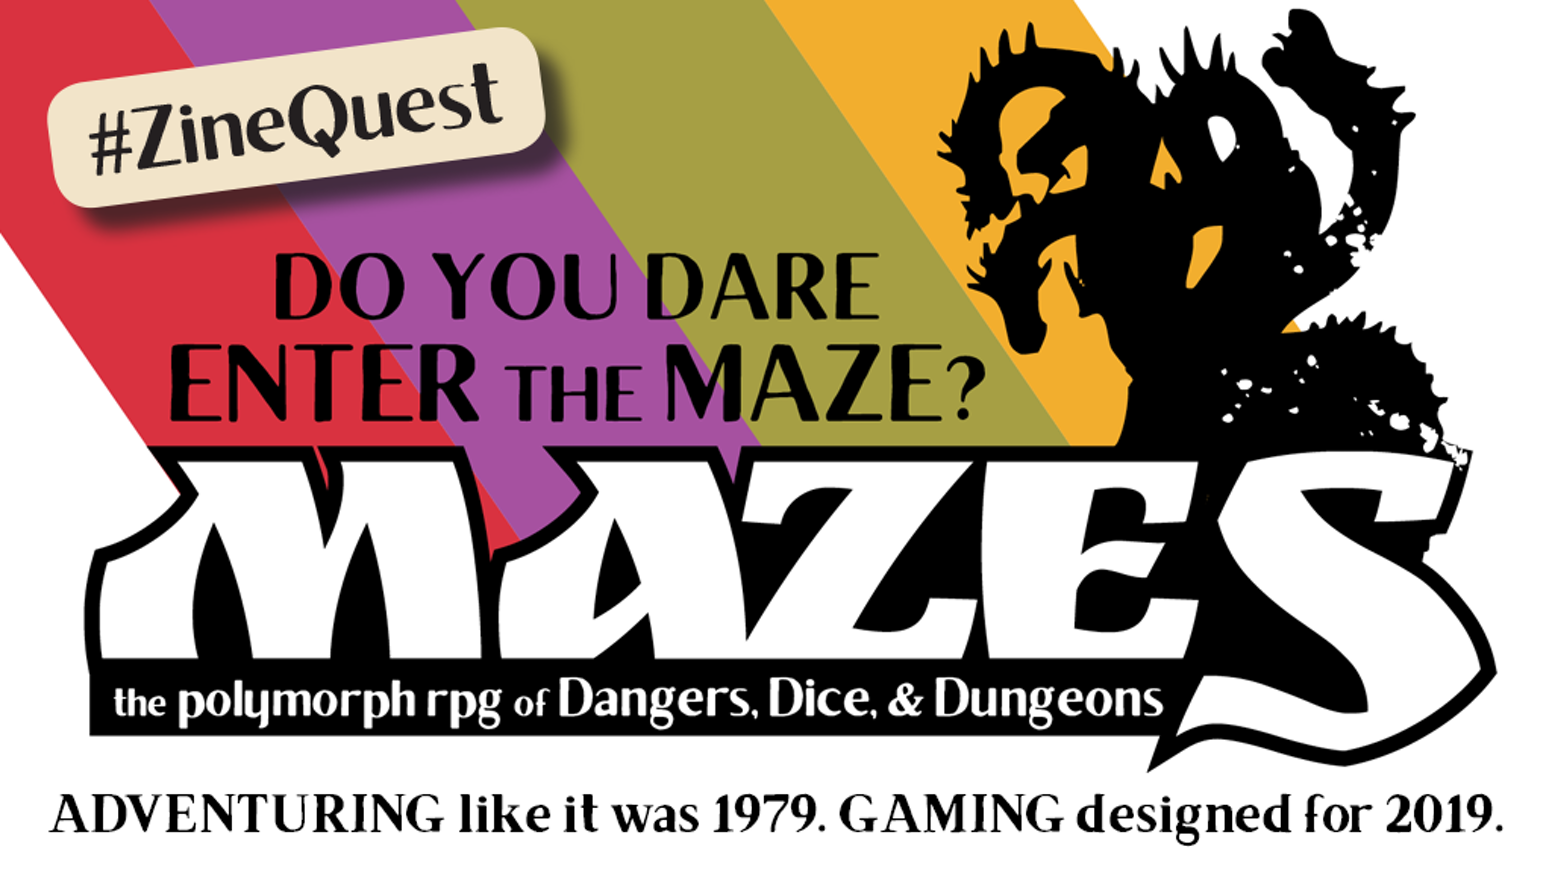 Adventuring like it was 1979, gaming designed for 2019. MAZES is powered by Polymorph a new role-playing system from 9th Level Games!